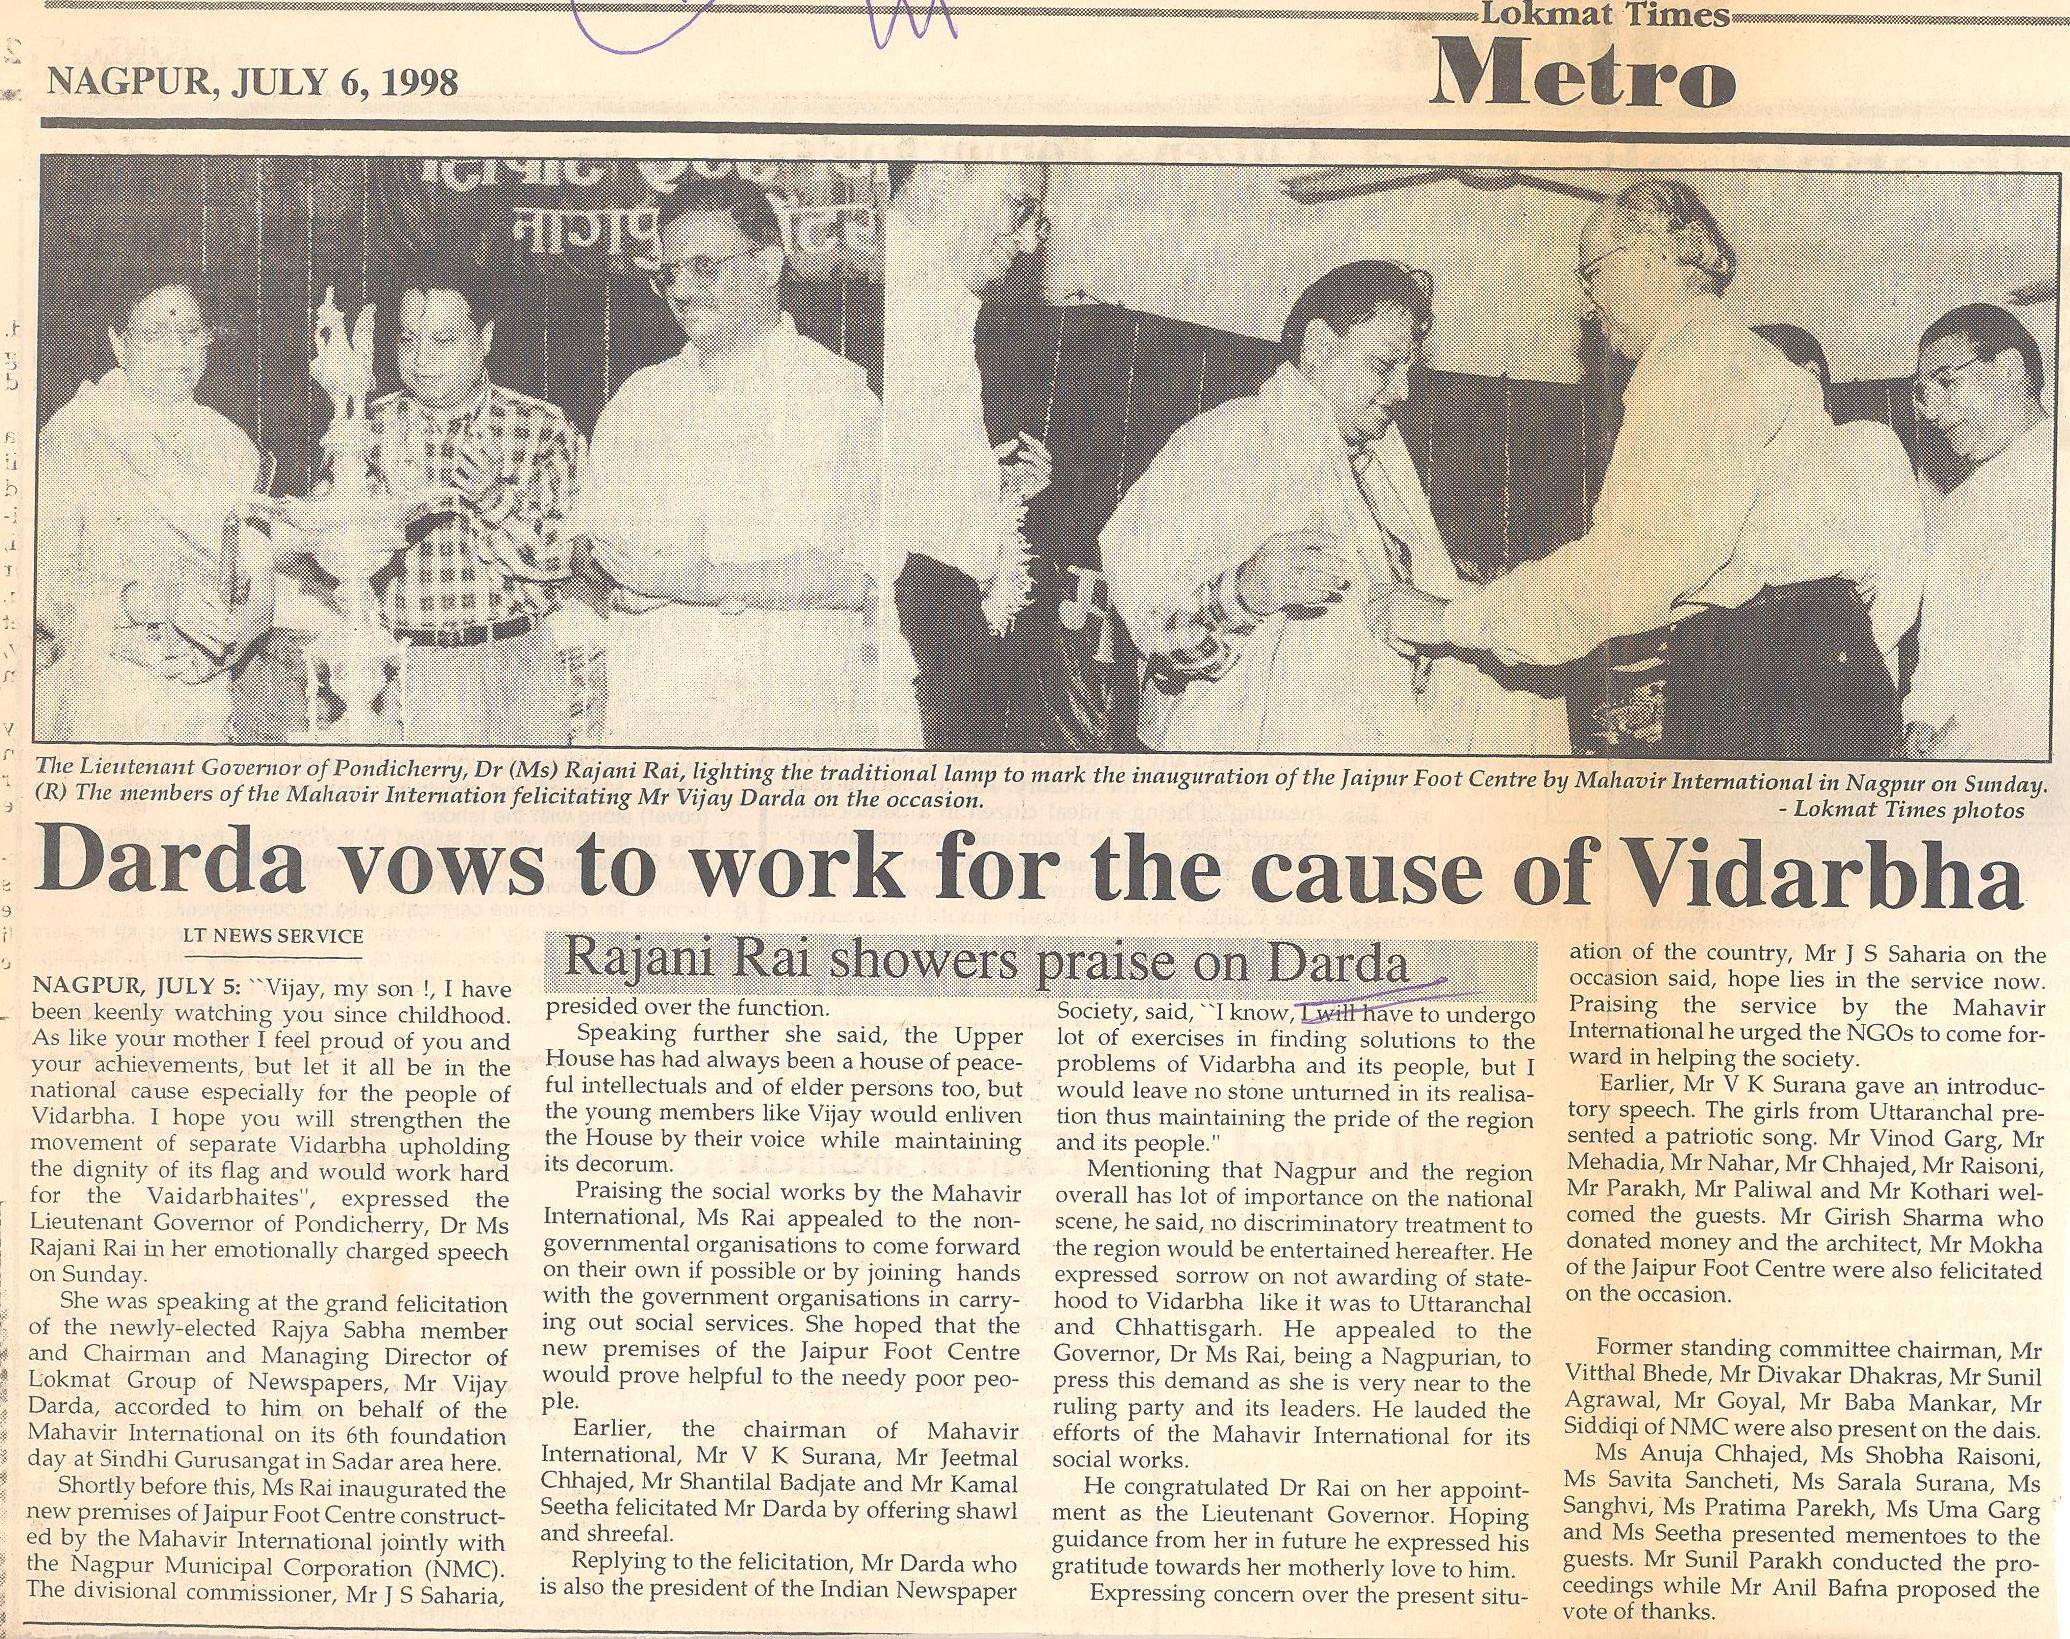 Darda vows to work for the cause of Vidarbha